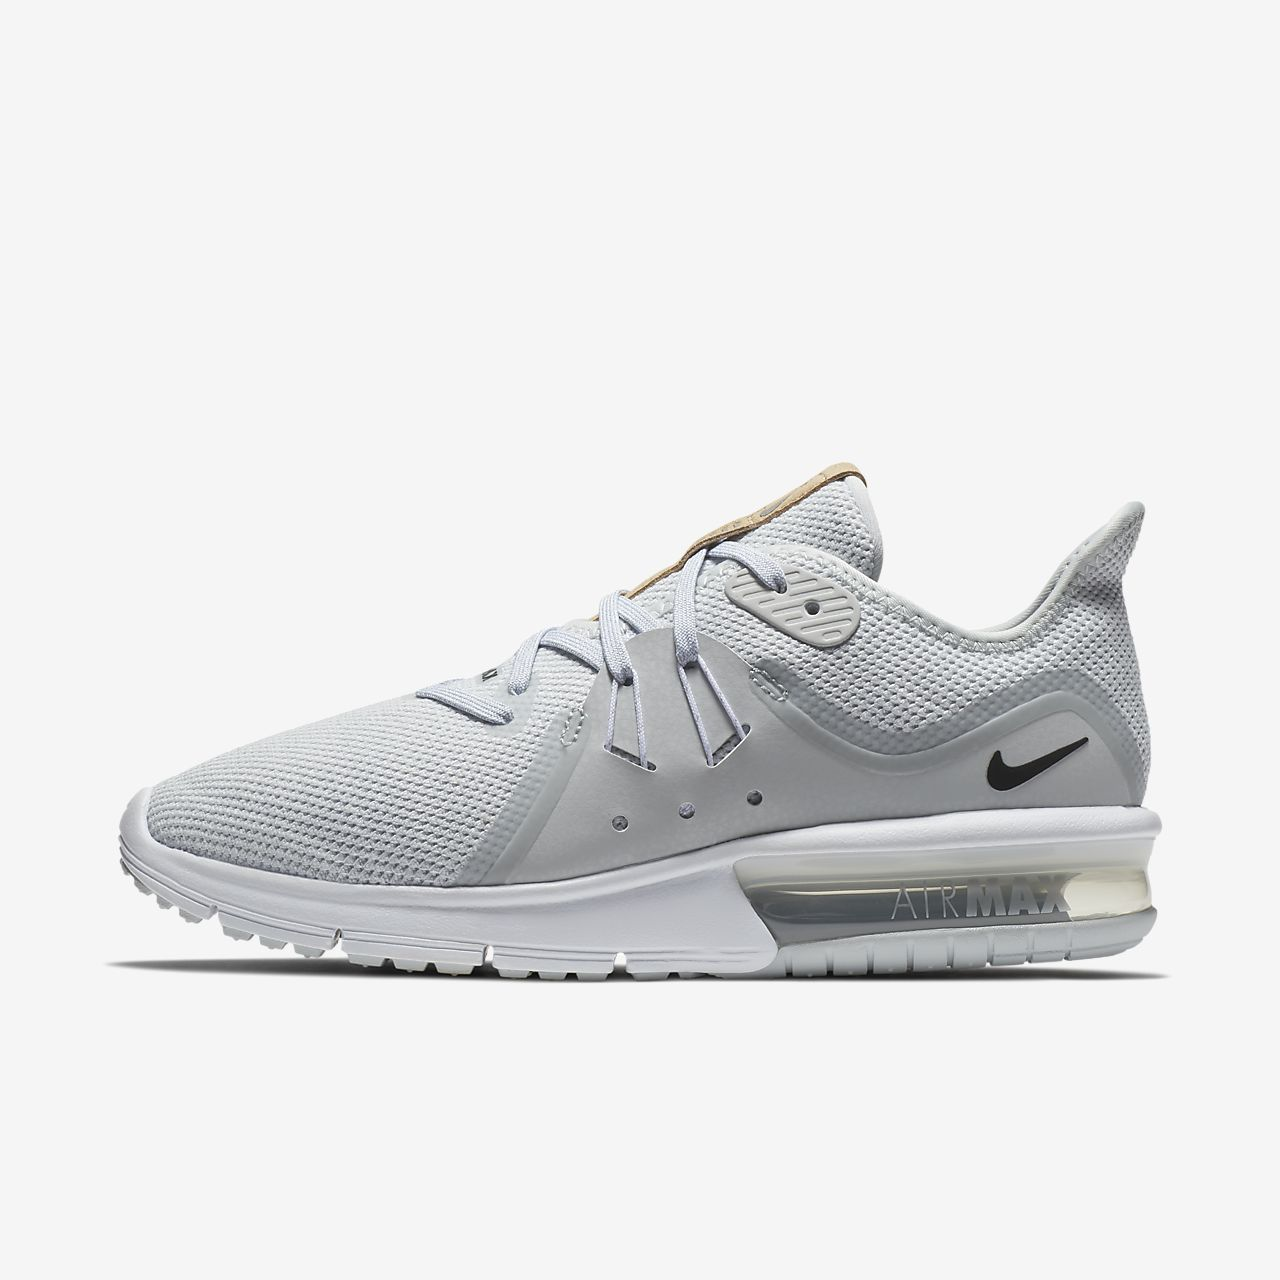 04bf882b3f Nike Air Max Sequent 3 Women's Shoe. Nike.com